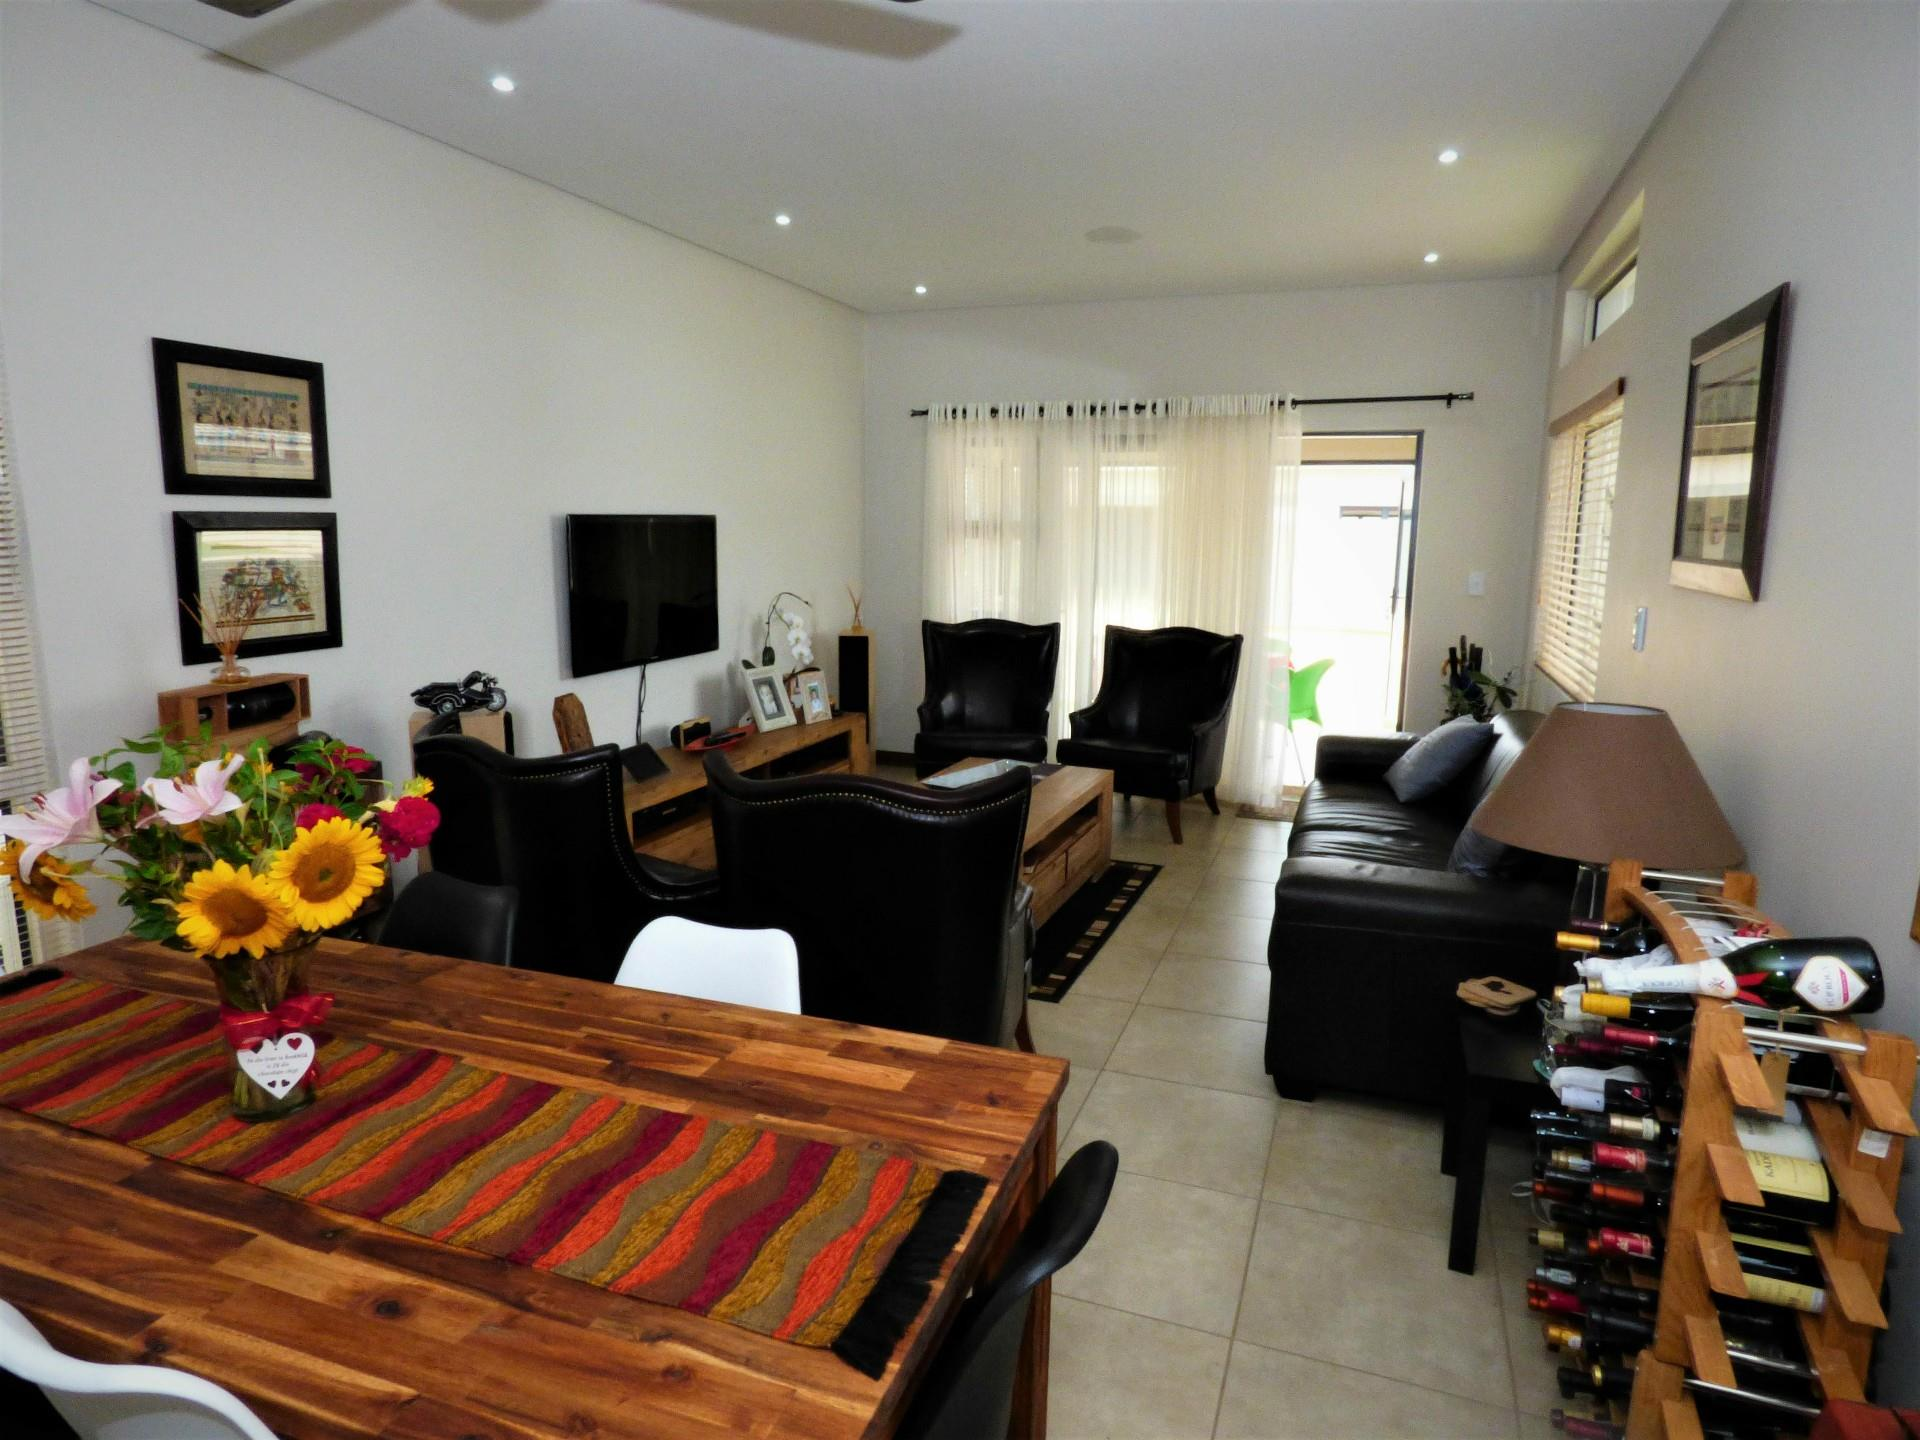 189 Eastlands Drive, Bredell, Kempton Park - ZAF (photo 4)